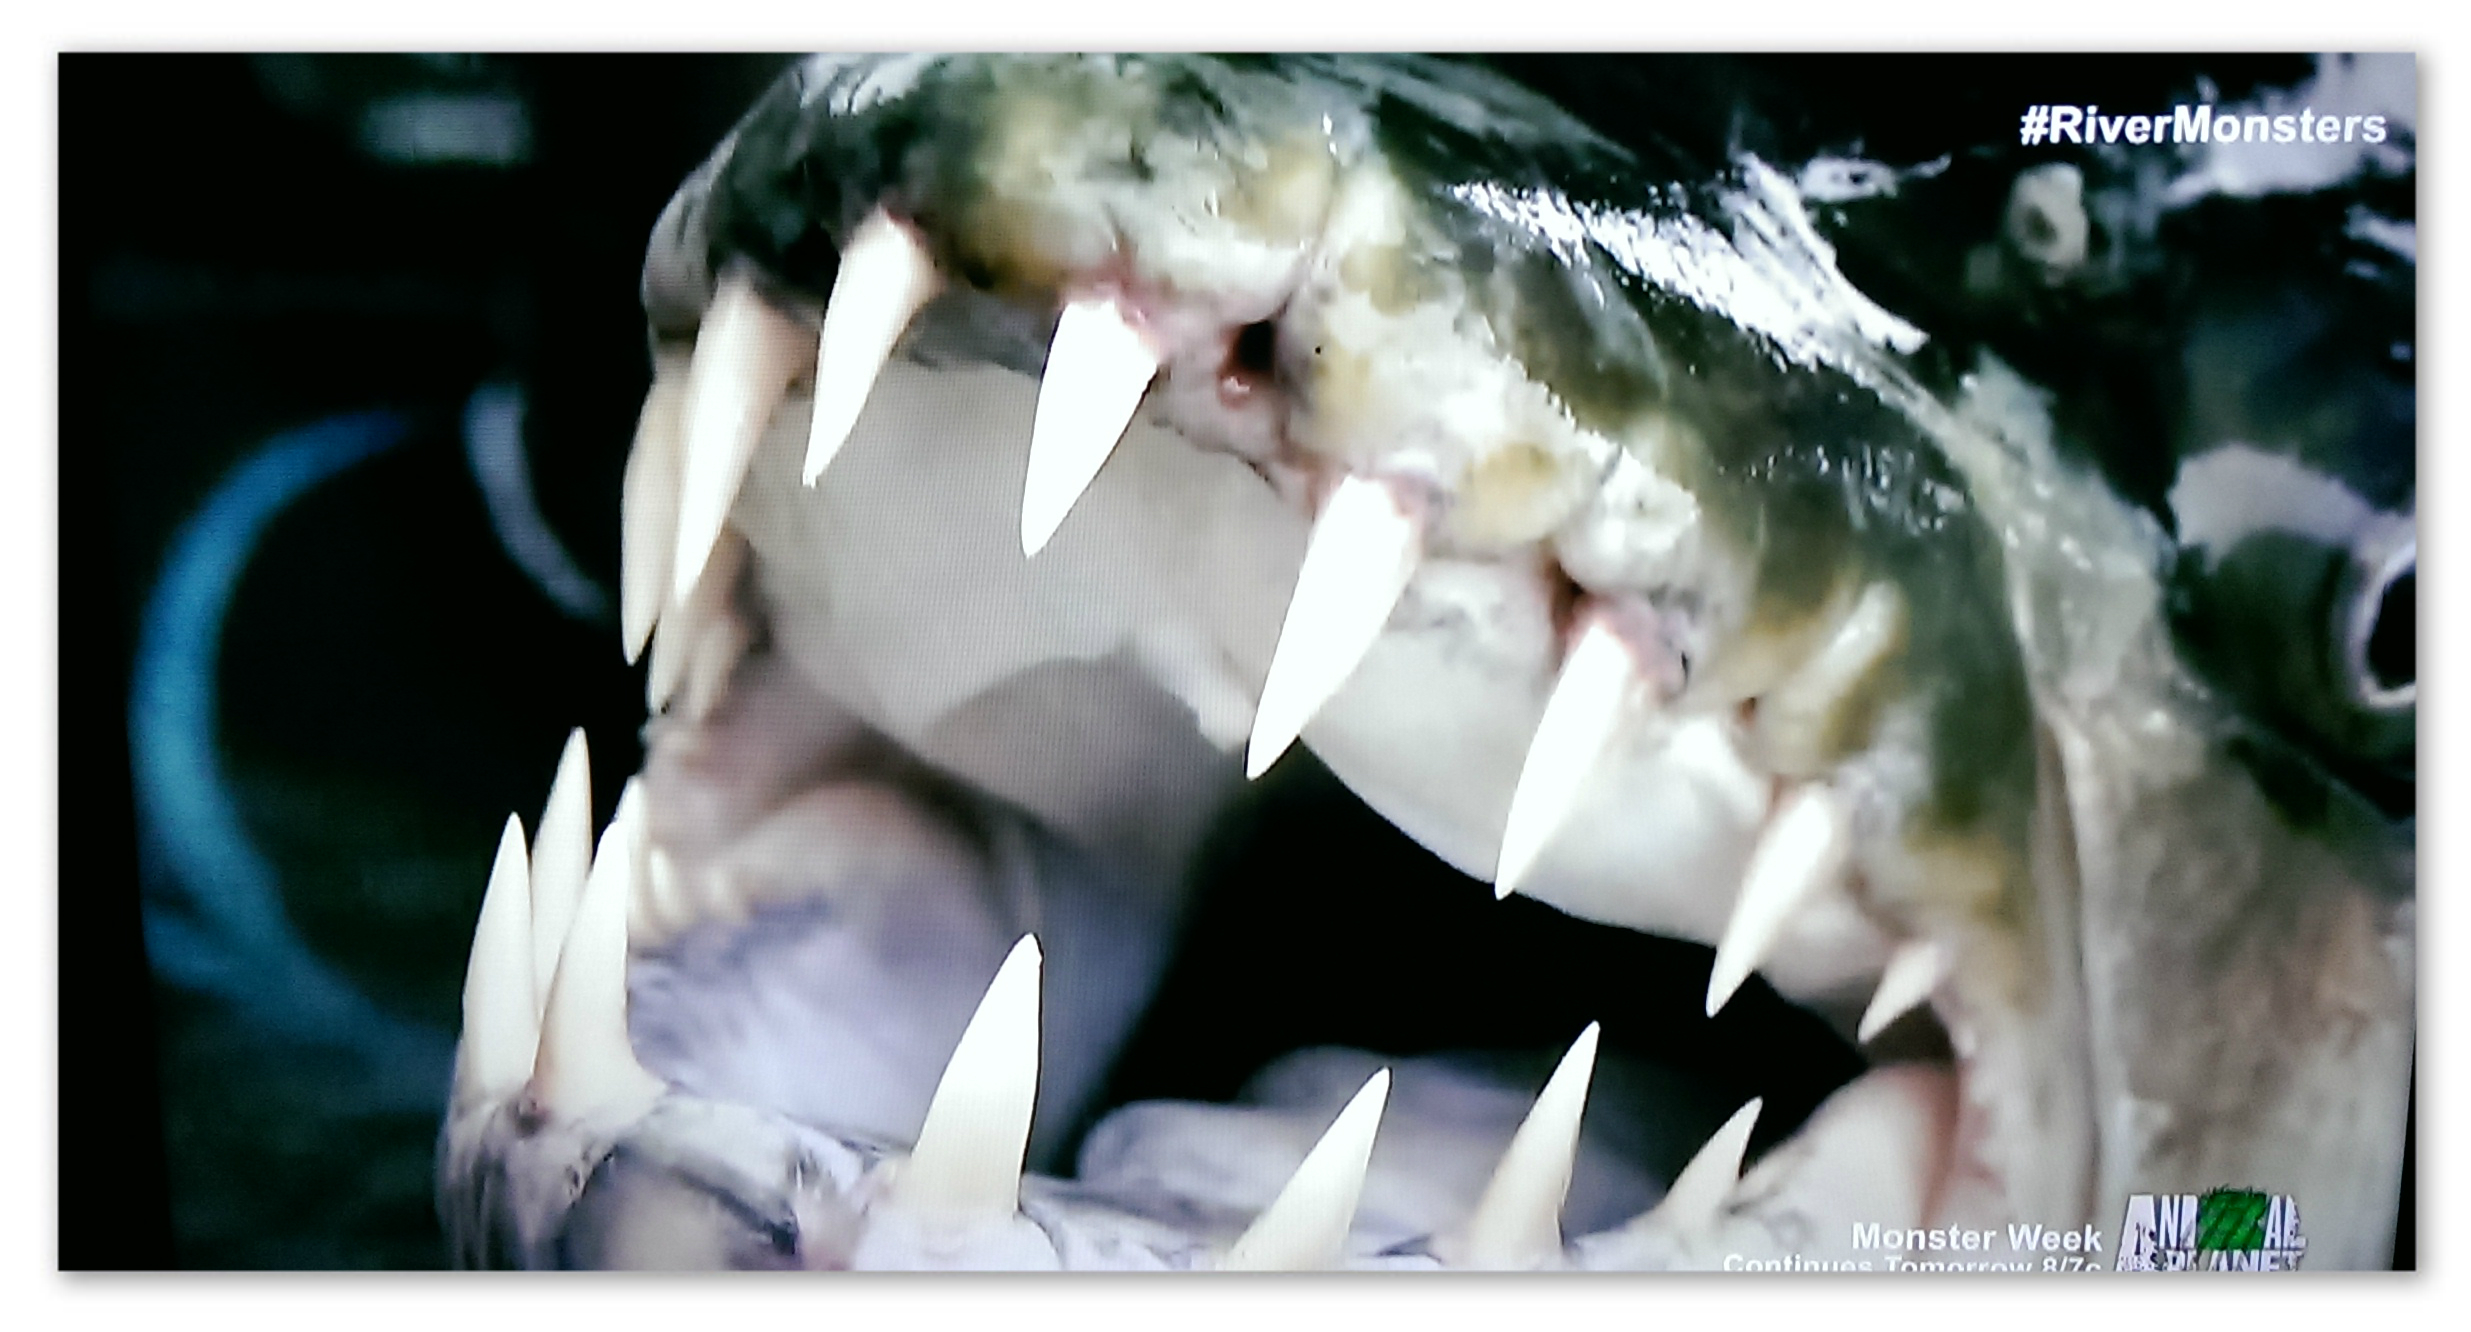 Image of a Goliath Tigerfish caught by Jeremy Wade